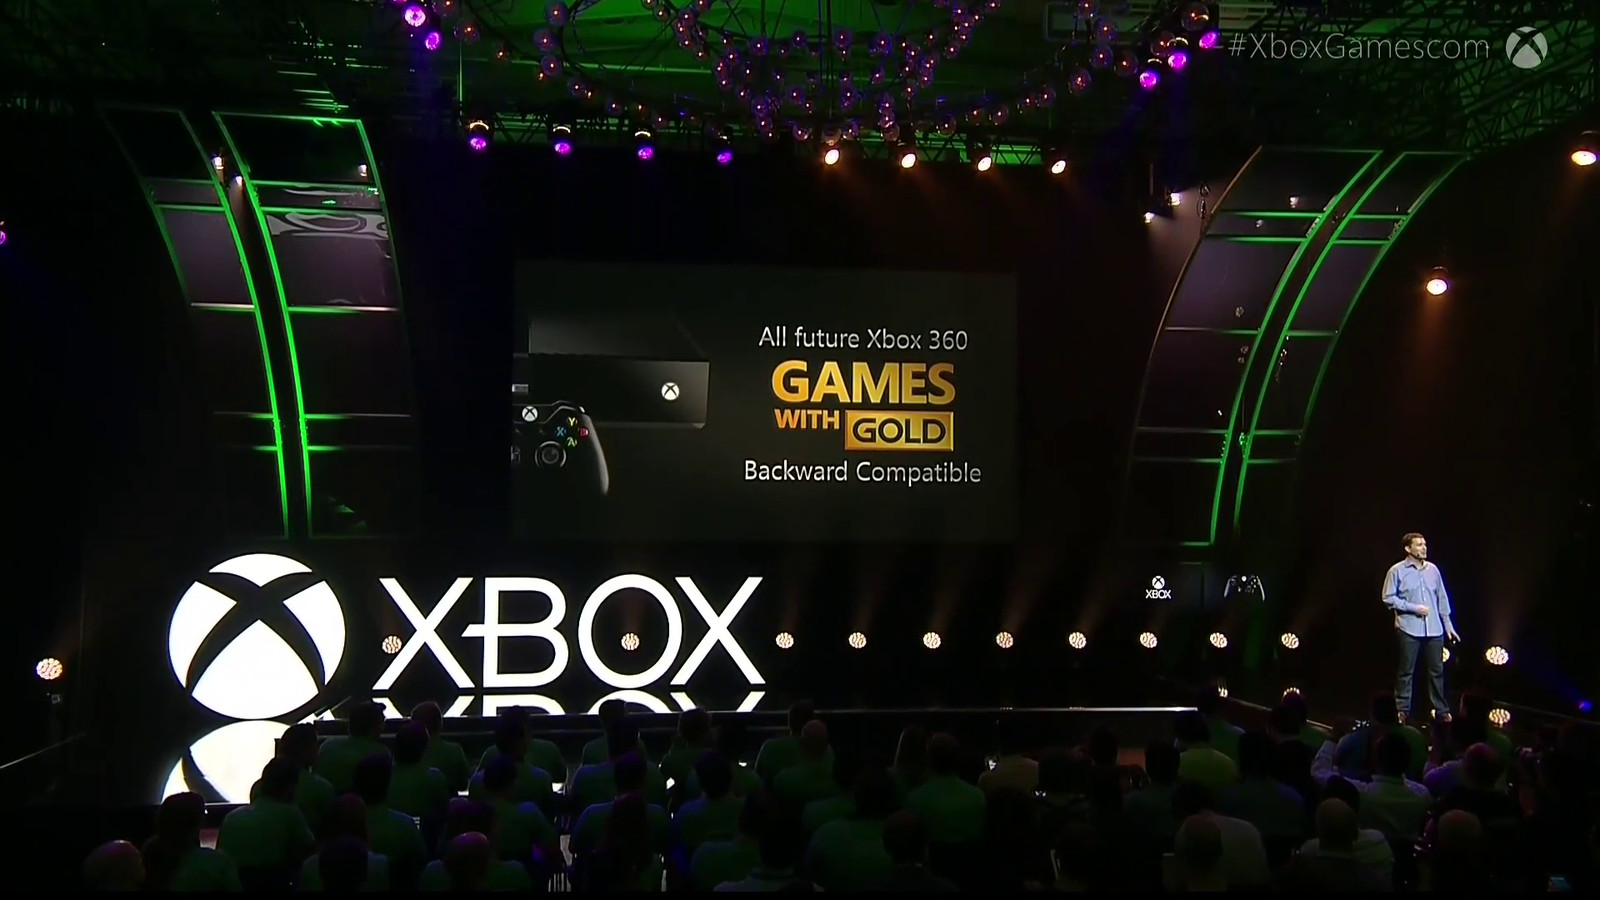 all future xbox 360 games with gold freebies will be